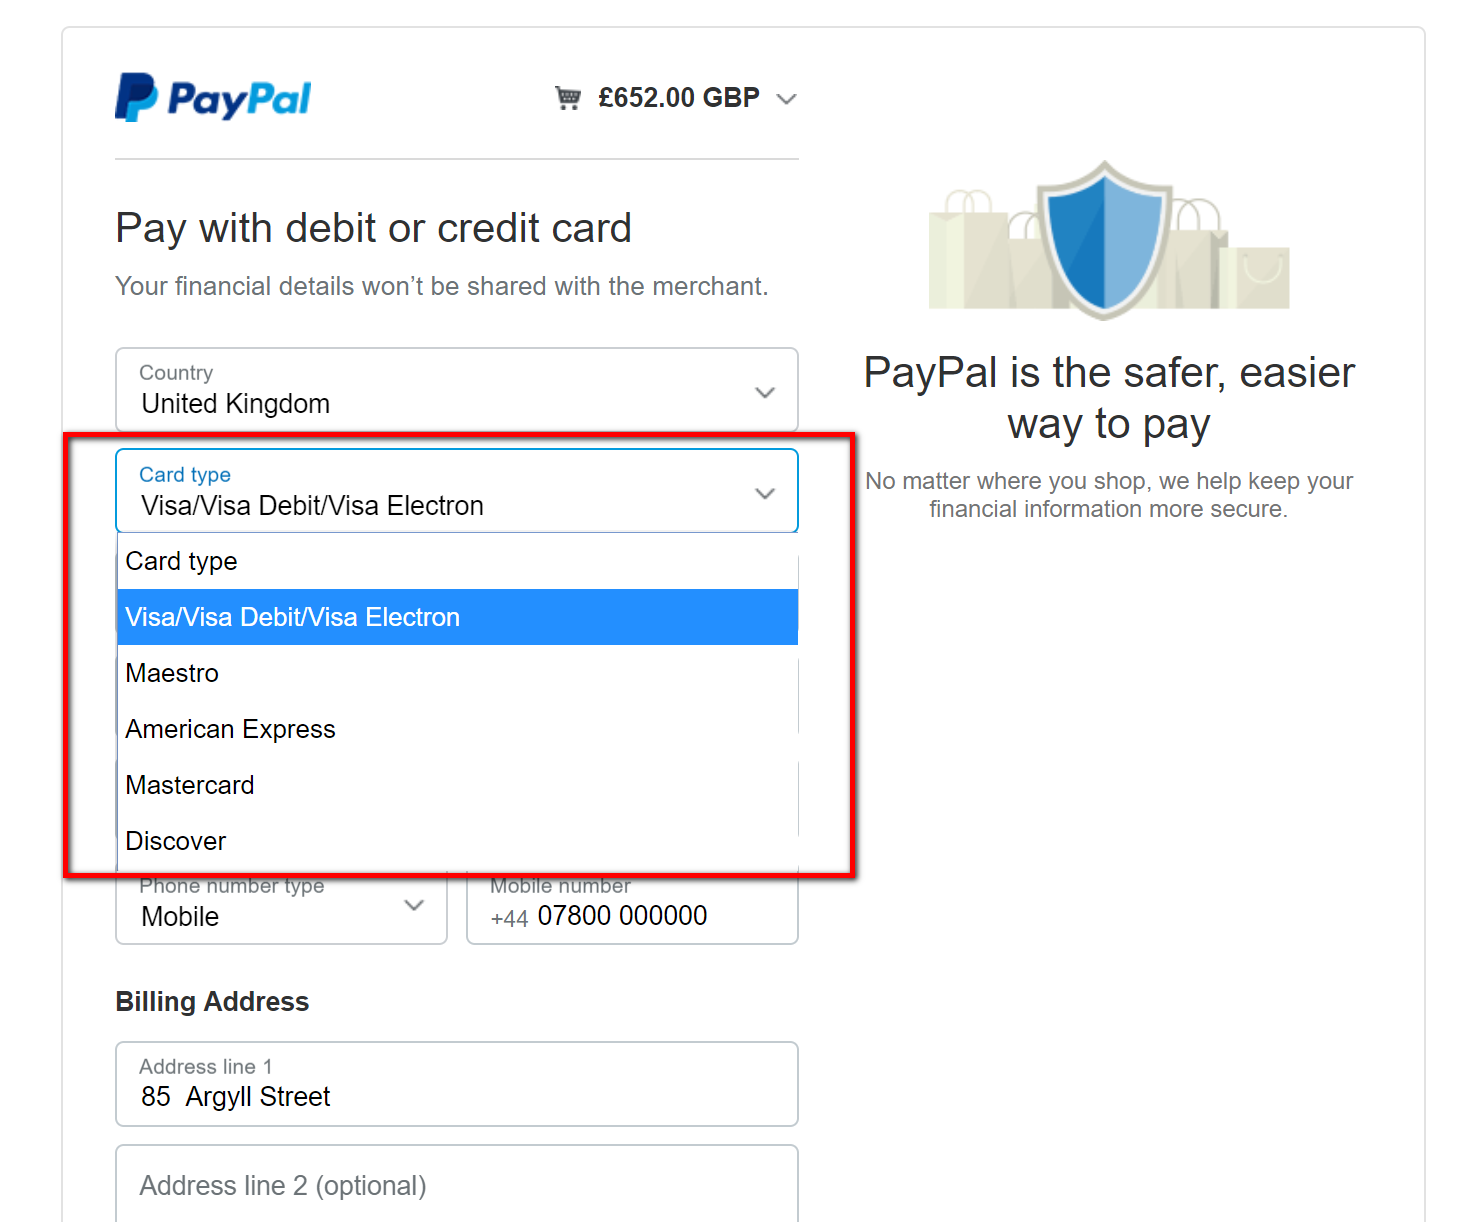 Supported payment method